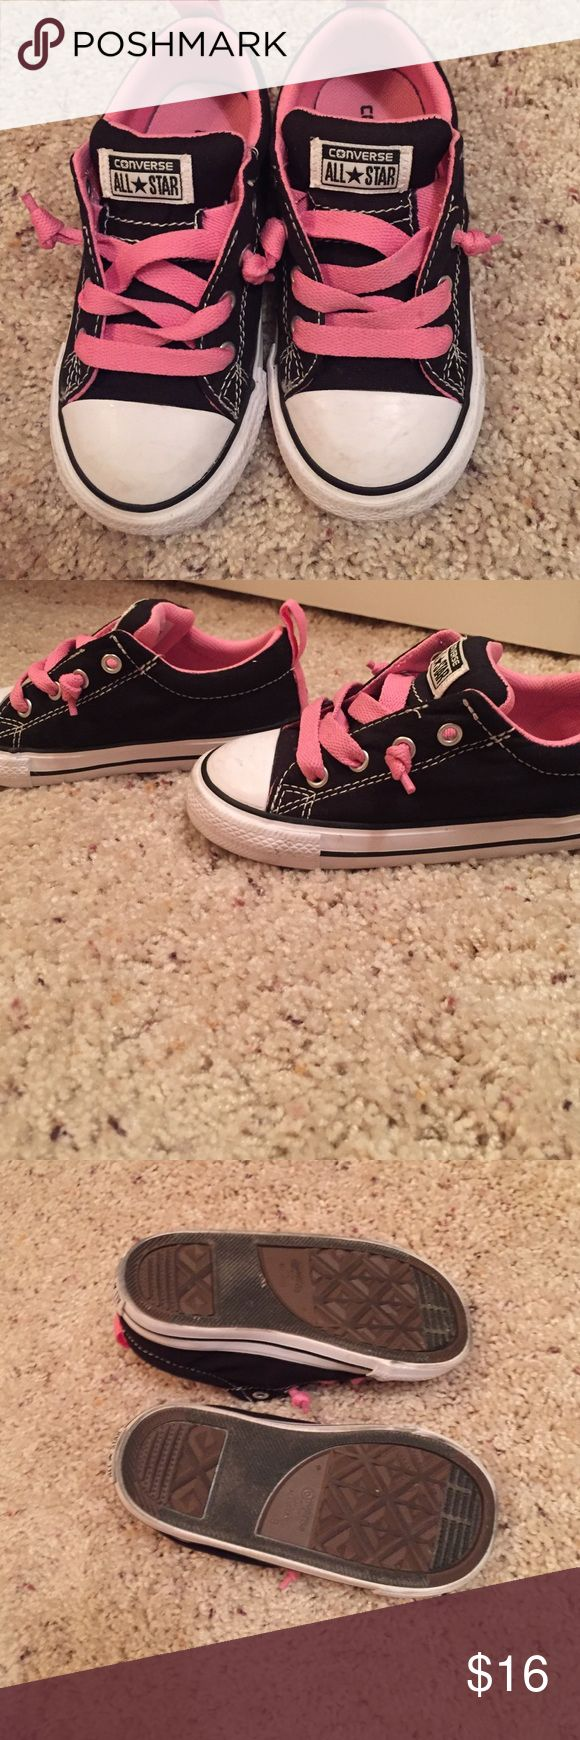 Black and pink kids converse Black w pink strings and inside. These are chucks but they are made a little thicker for kids. Only worn twice. Converse Shoes Sneakers